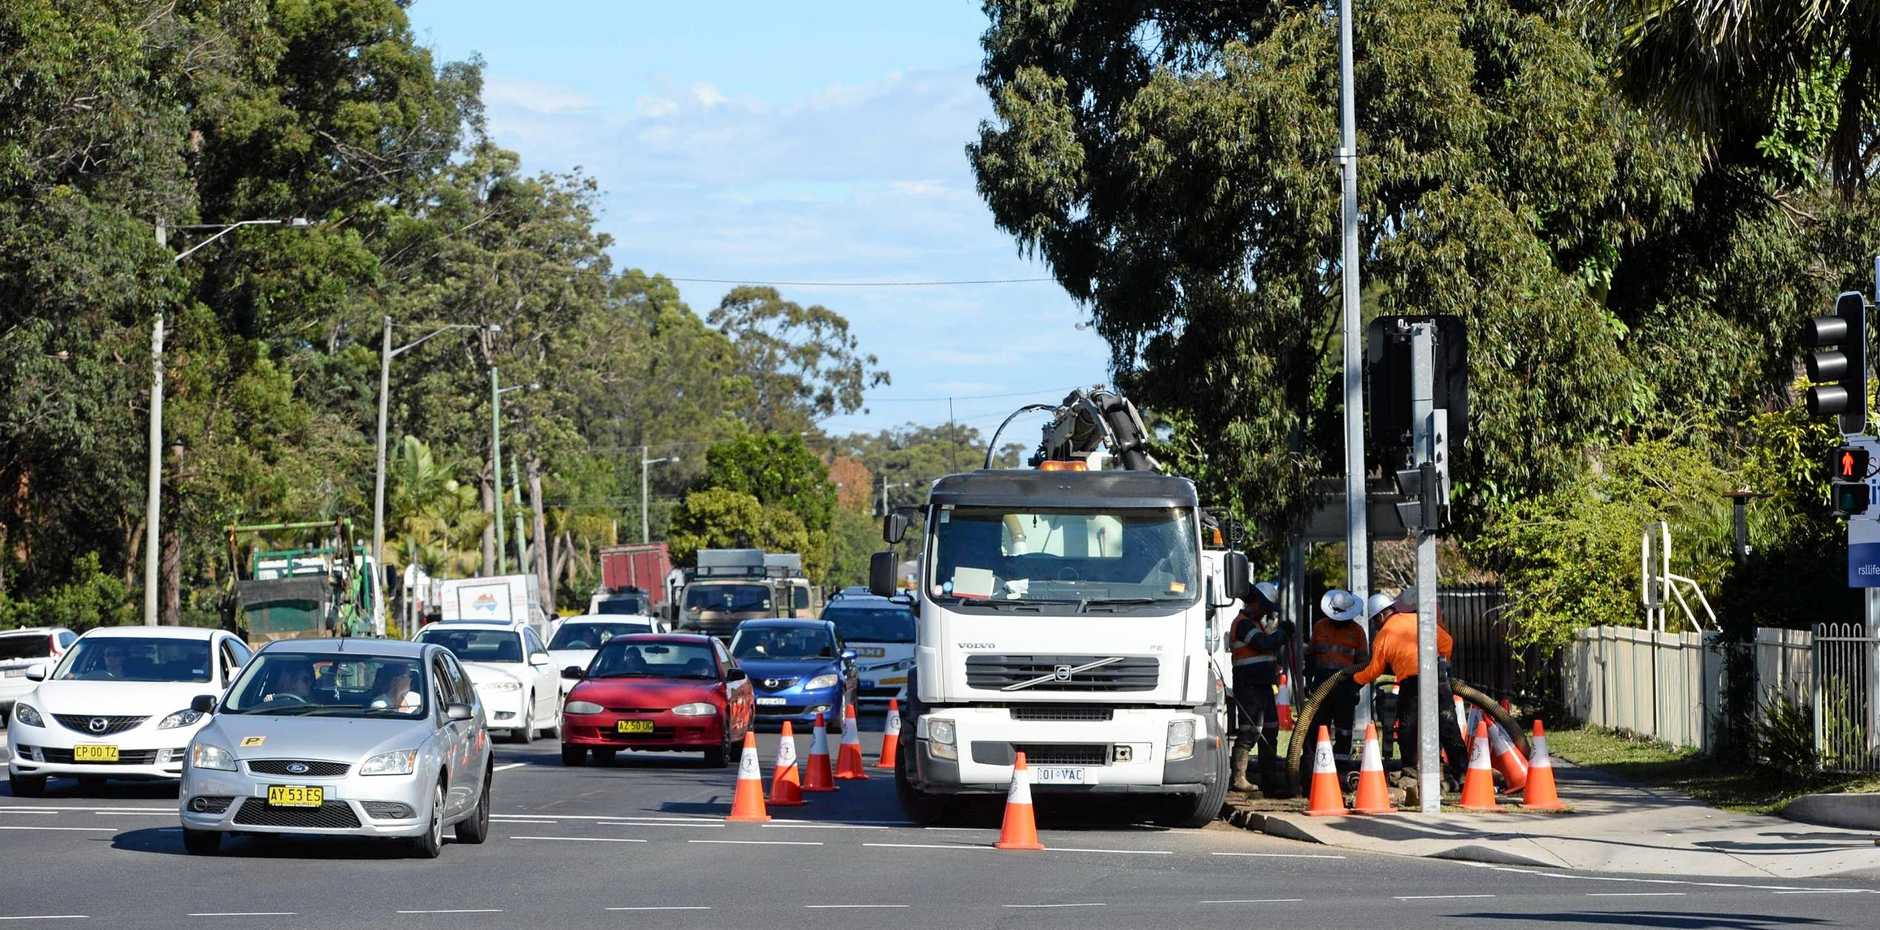 Work crews have today started to install red light cameras at the Pacific Highway intersection with Bray and Orlando Sts.